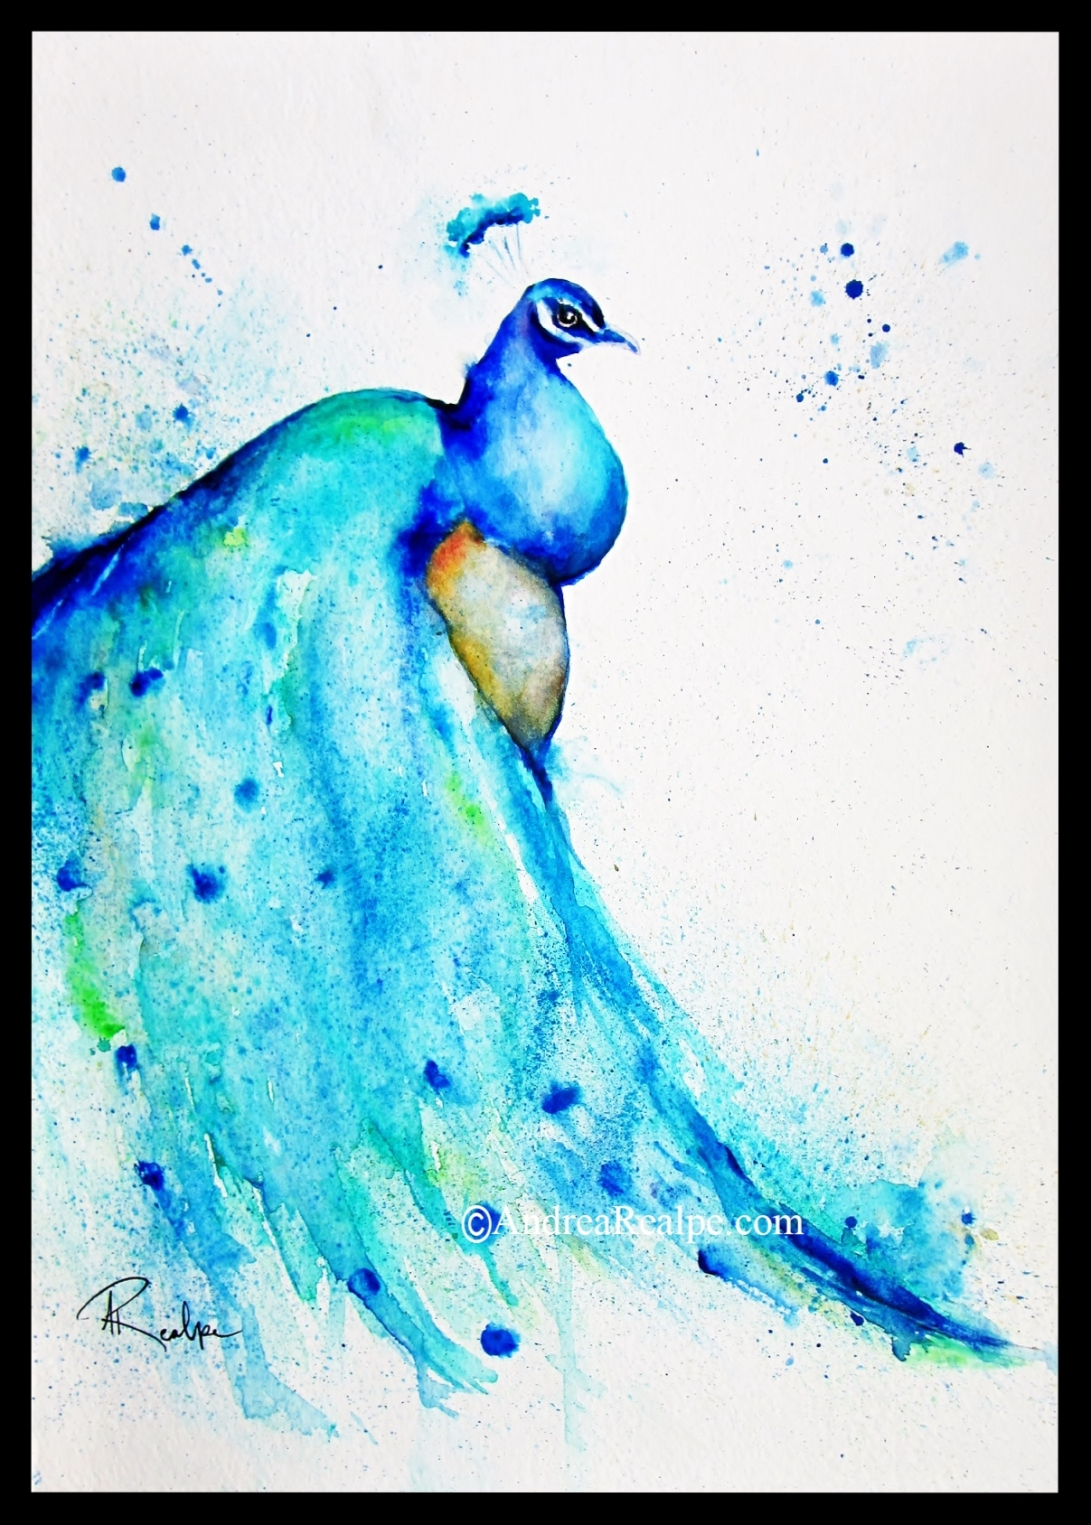 Blue Beauty Watercolor Painting